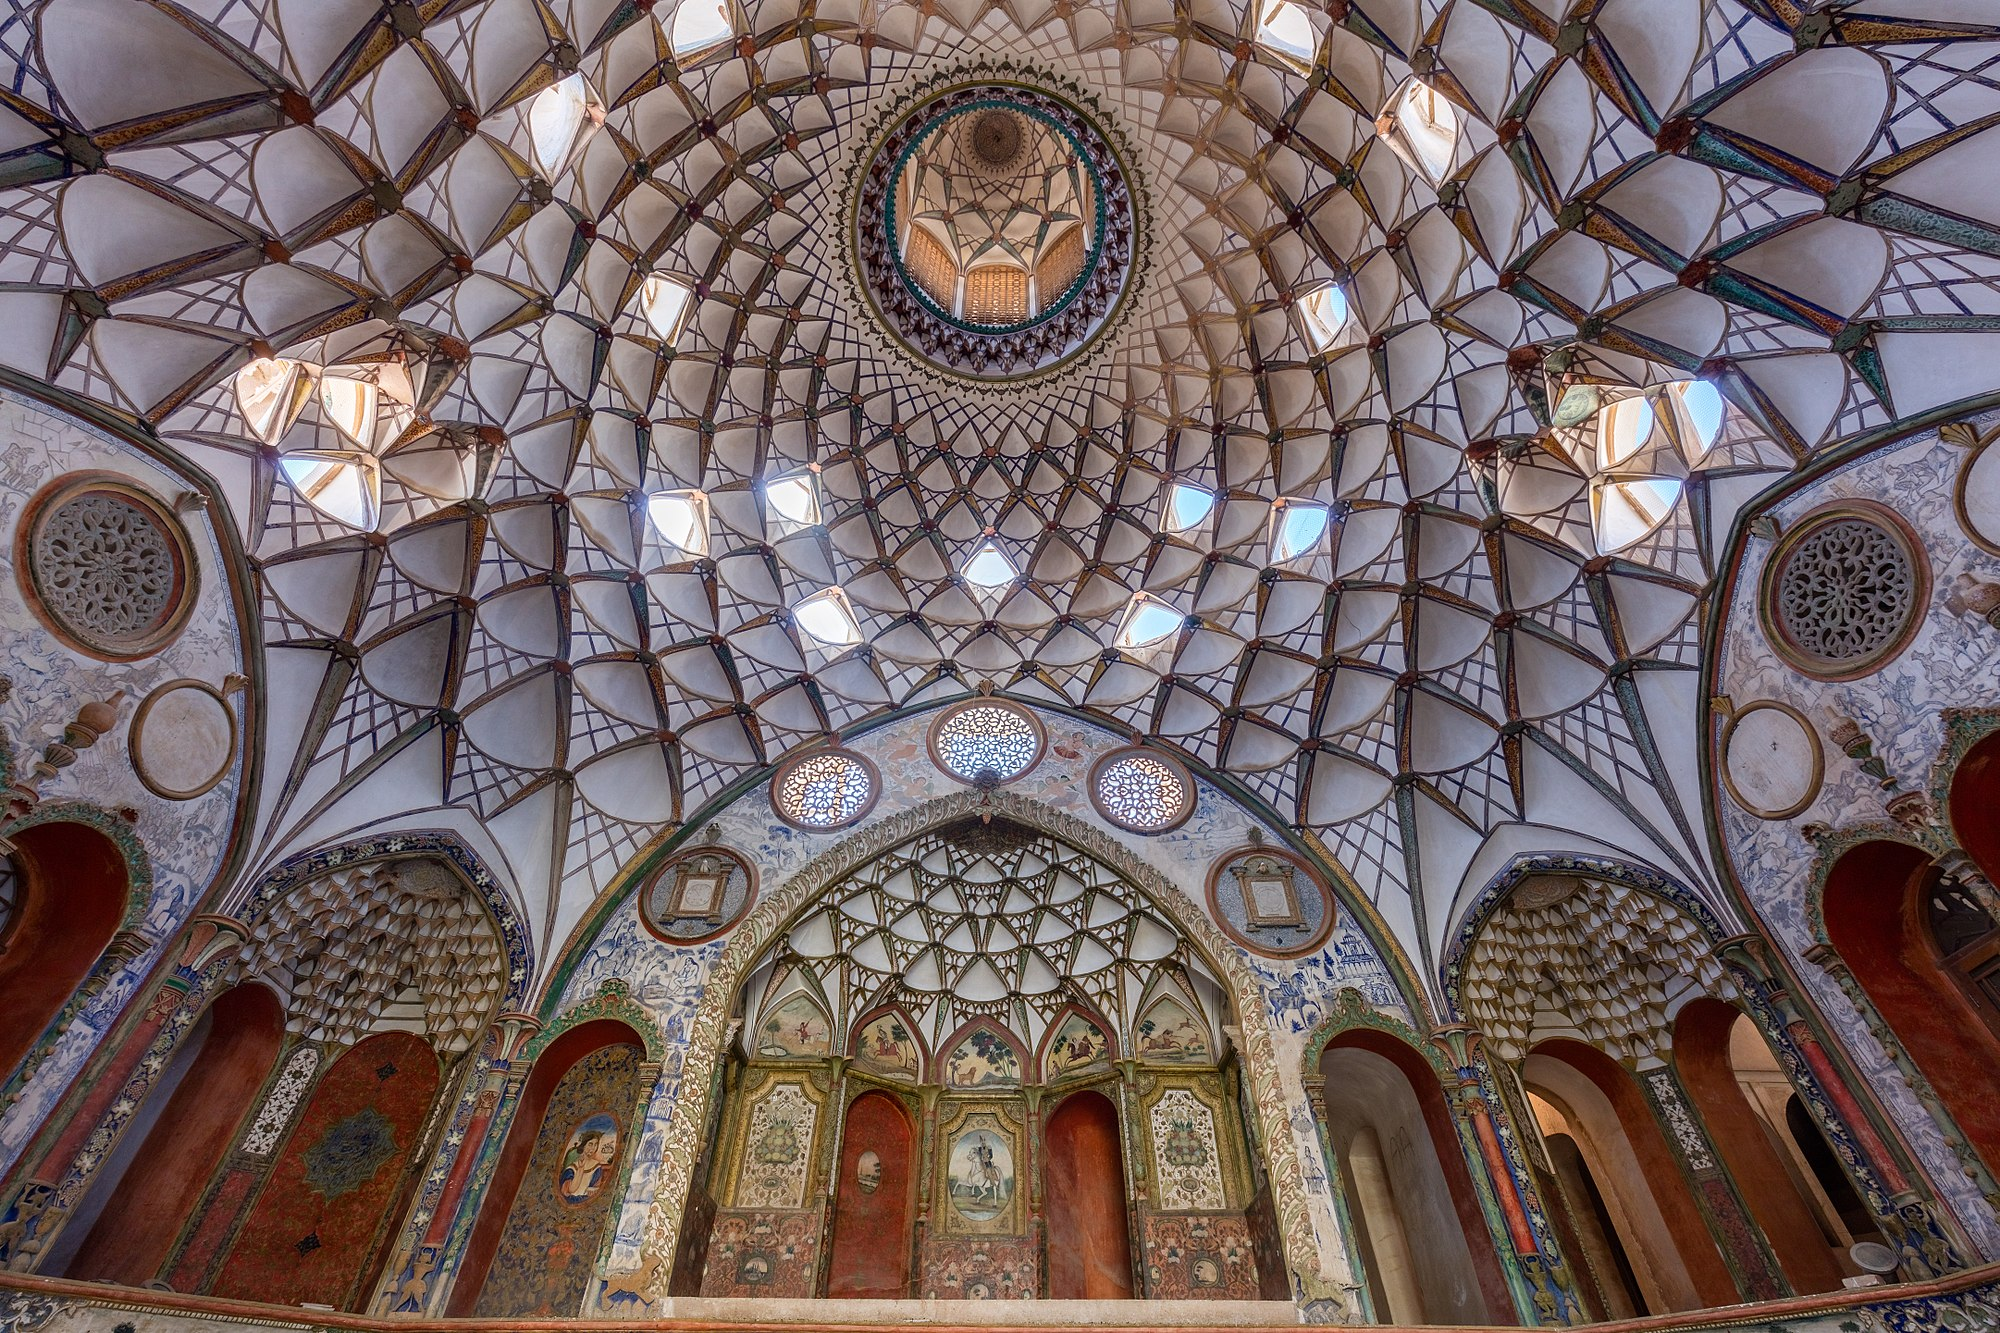 View of the rich ceiling of the interior courtyard of the Borujerdi House, a historic house located in Kashan, Iran. The house dates from 1857 and was constructed by architect Ustad Ali Maryam for a wealthy merchant as proof of love to his wife.